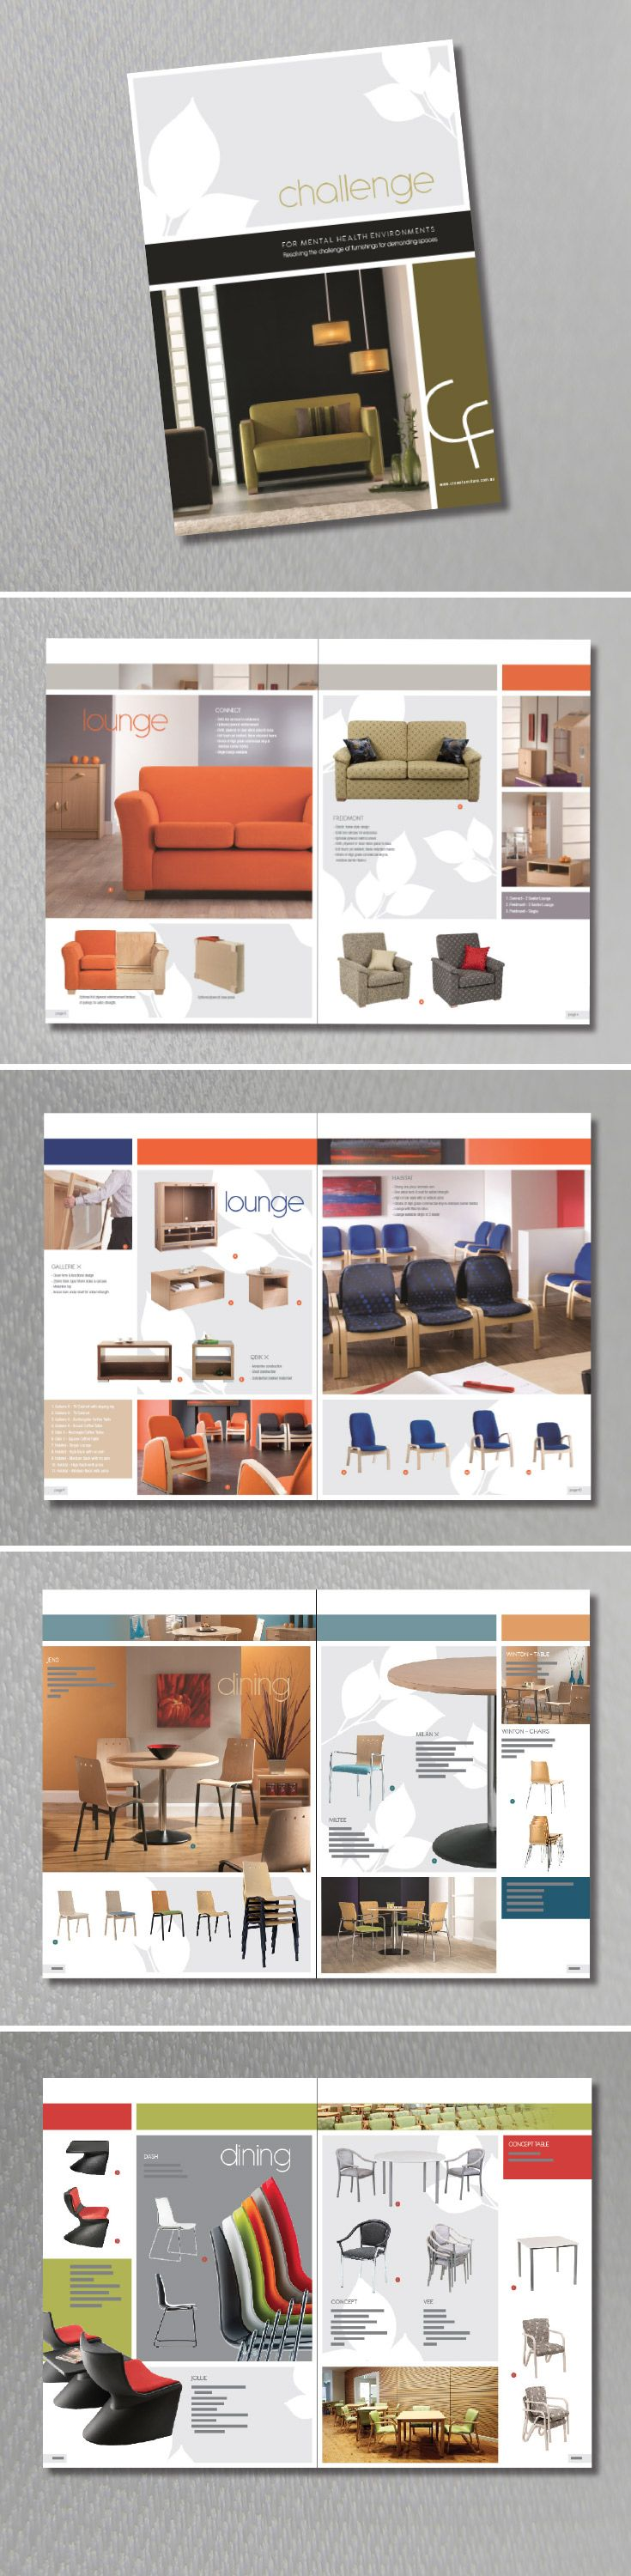 Brochure Design. Customer is Crown Furniture Brochure aimed at health & Aged Care